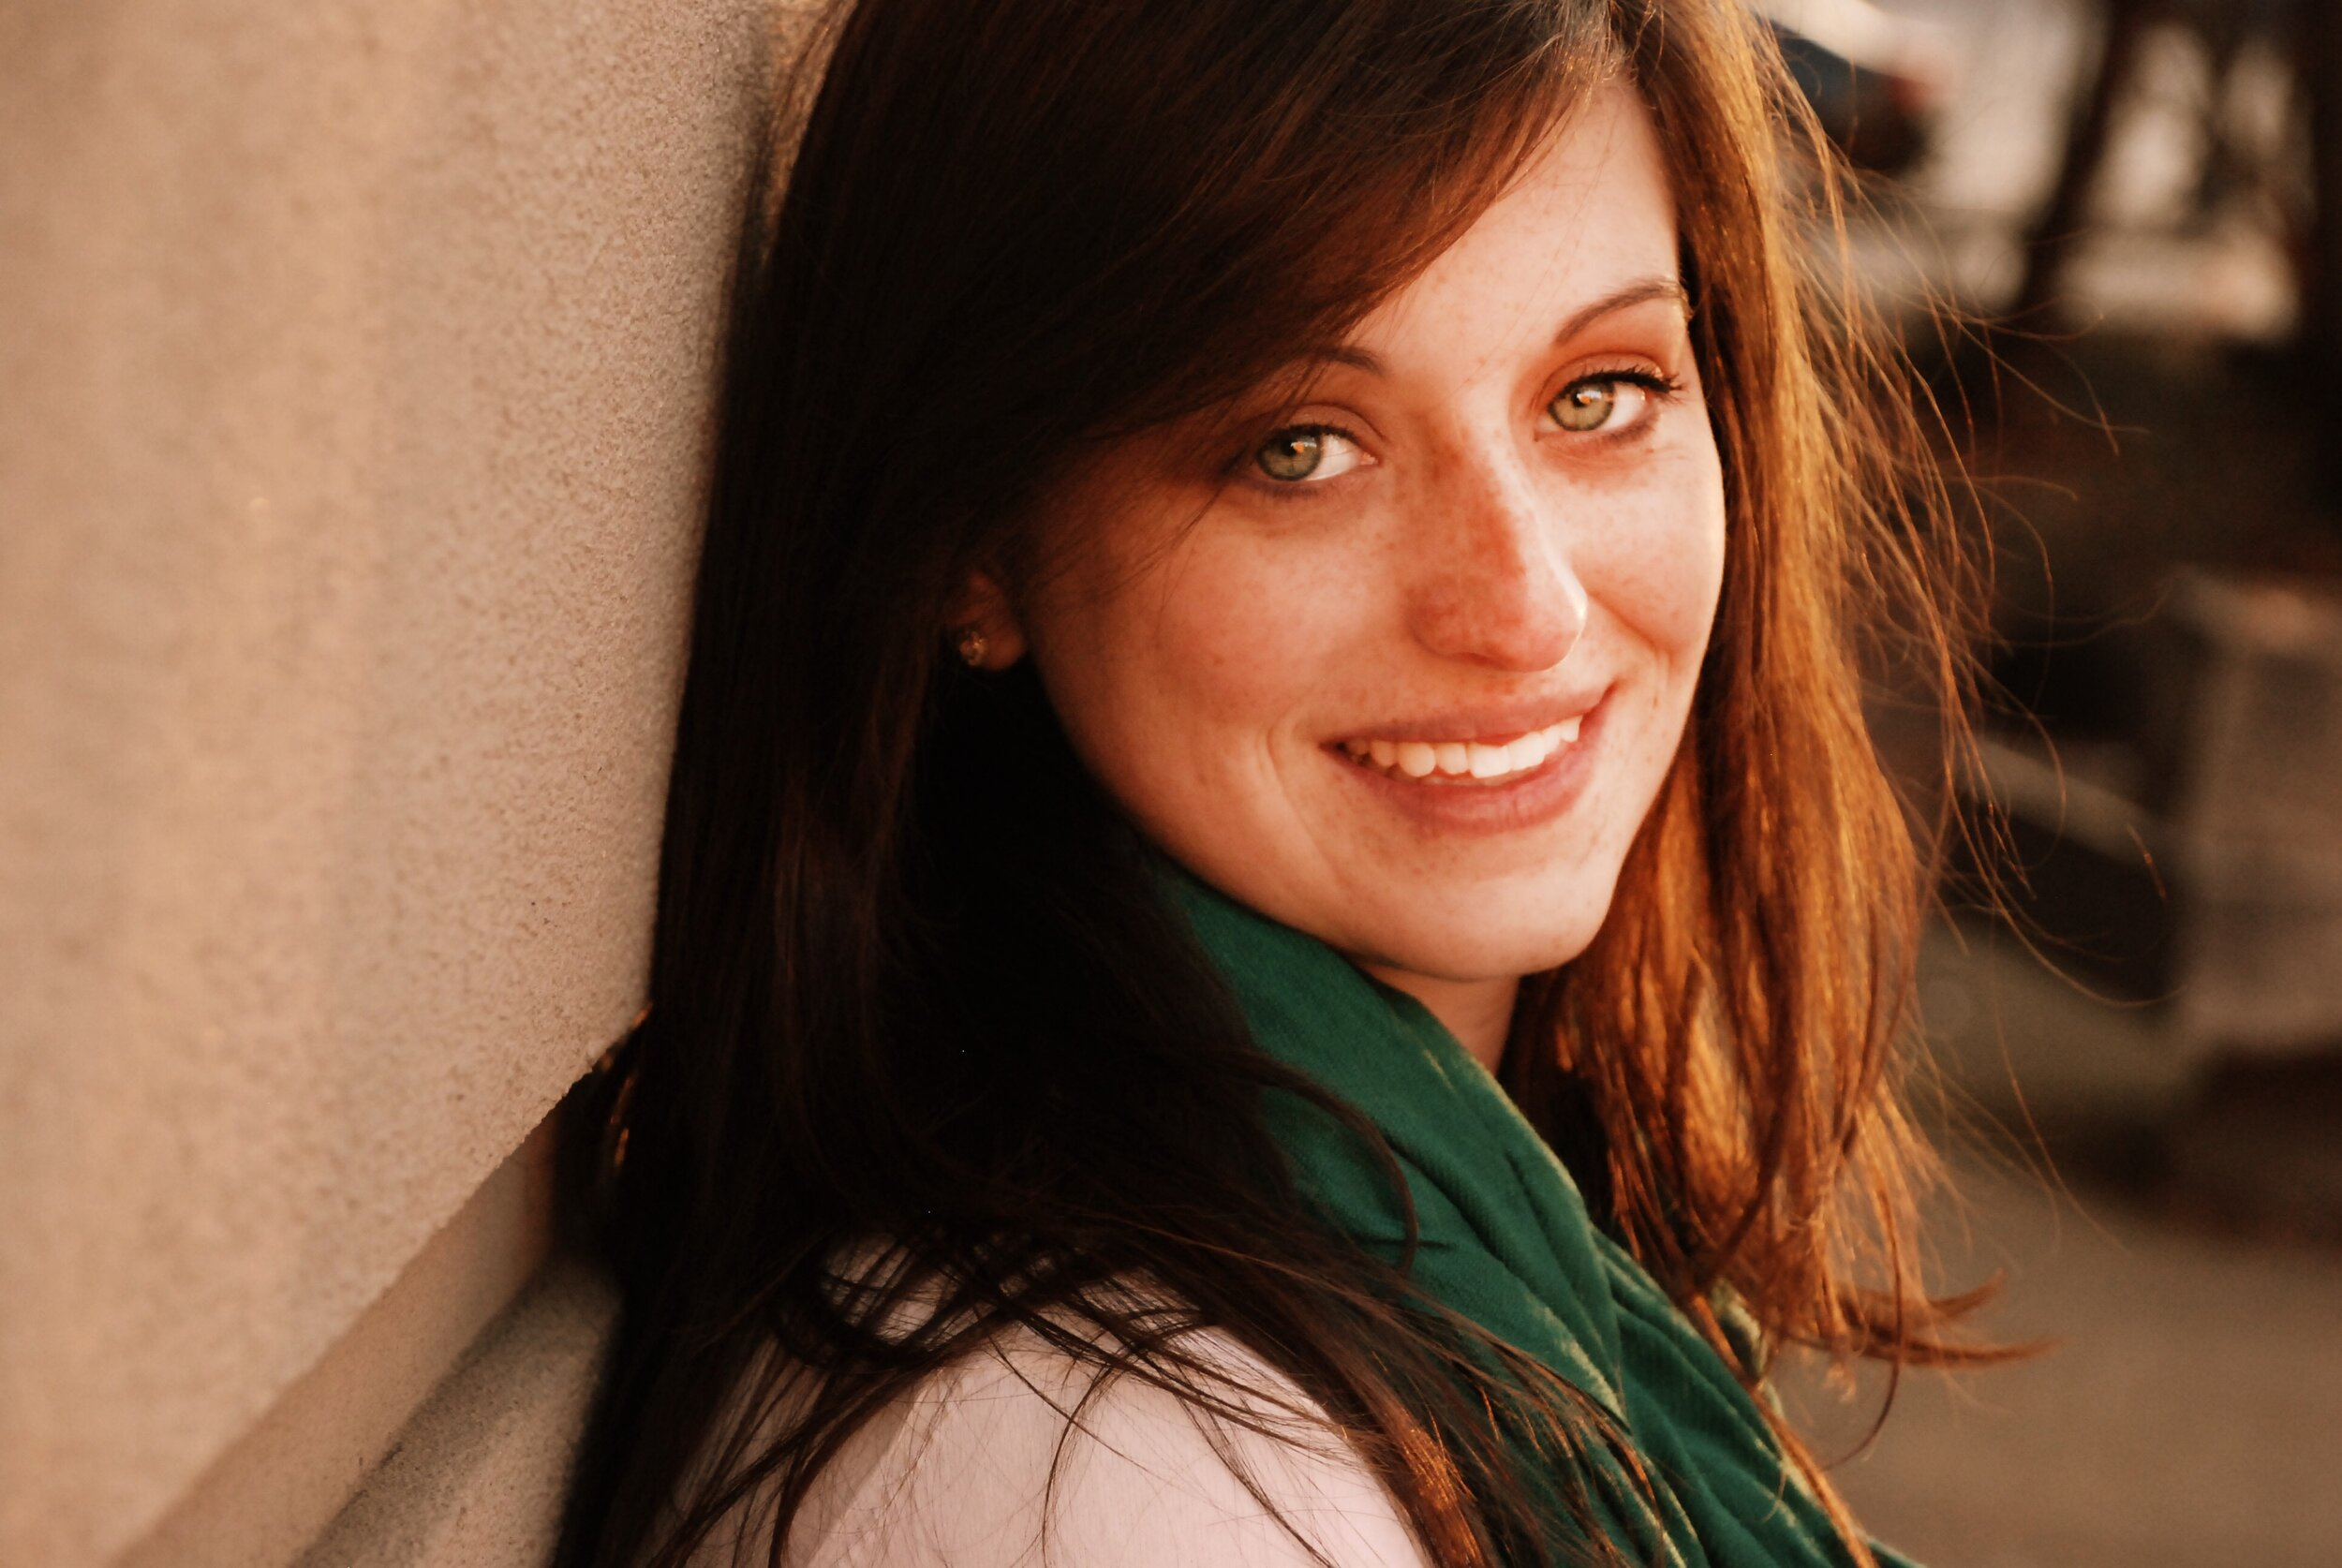 Erin - Erin Styron, a Franklin native, began her journey with dance at age five. She was classically trained in modern, ballet, tap, and jazz at Franklin School of Performing Arts. In 2013, she received a BFA in Dance from Ohio State. Erin has performed and studied with several distinguished choreographers including Meghan Durham-Wall, Susan Hadley, Bebe Miller, Olivier Tarpaga and Abby Yager. In conjunction with performing, she presented choreography at OSU and around the city of Columbus. During her time at the university, Erin specialized in dance education and using dance to help people with disabilities. She believes that dance can be for everyone and enjoys sharing her passion for dance with children and adults of all abilities. Currently, she is an instructor with Dance In Bloom, Metro Parks Dance Division, as well as Backlight Productions. Erin is excited to share her love for dance with Epiphany Dance Partners.